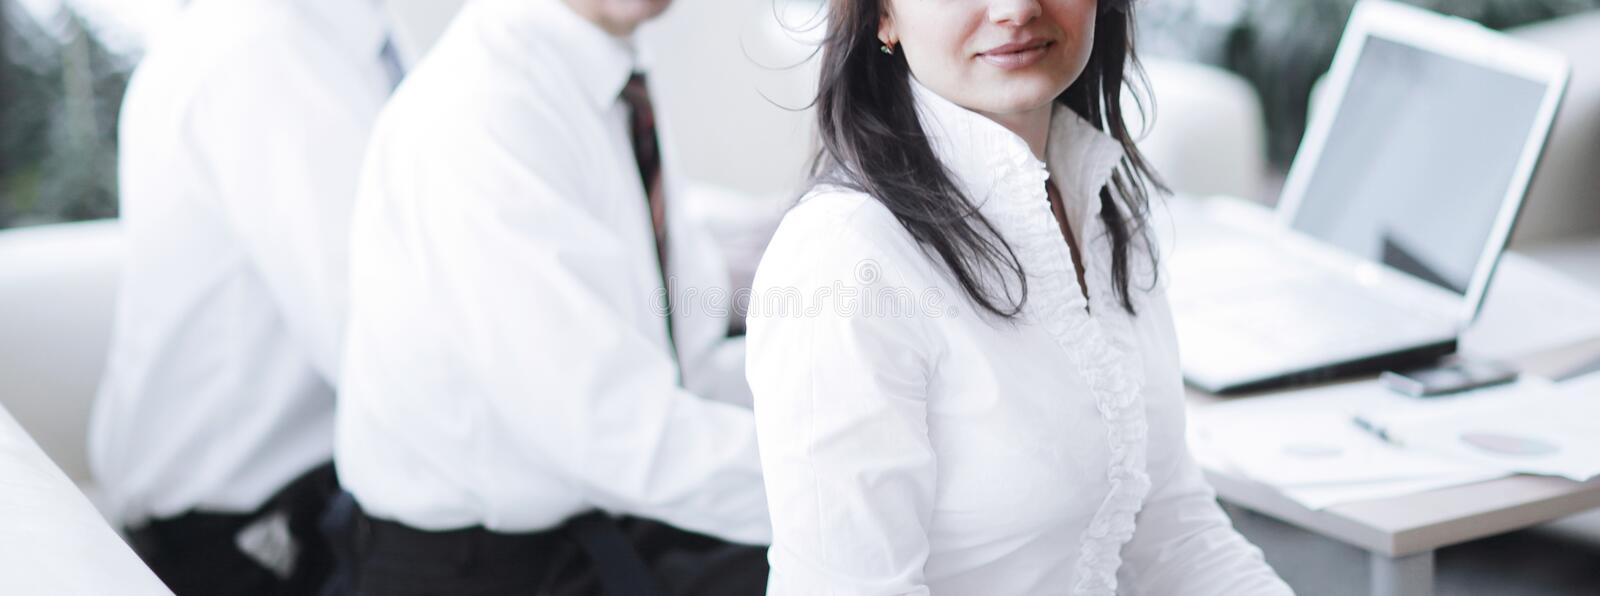 Portrait of modern business woman on the background of her workplace royalty free stock photo